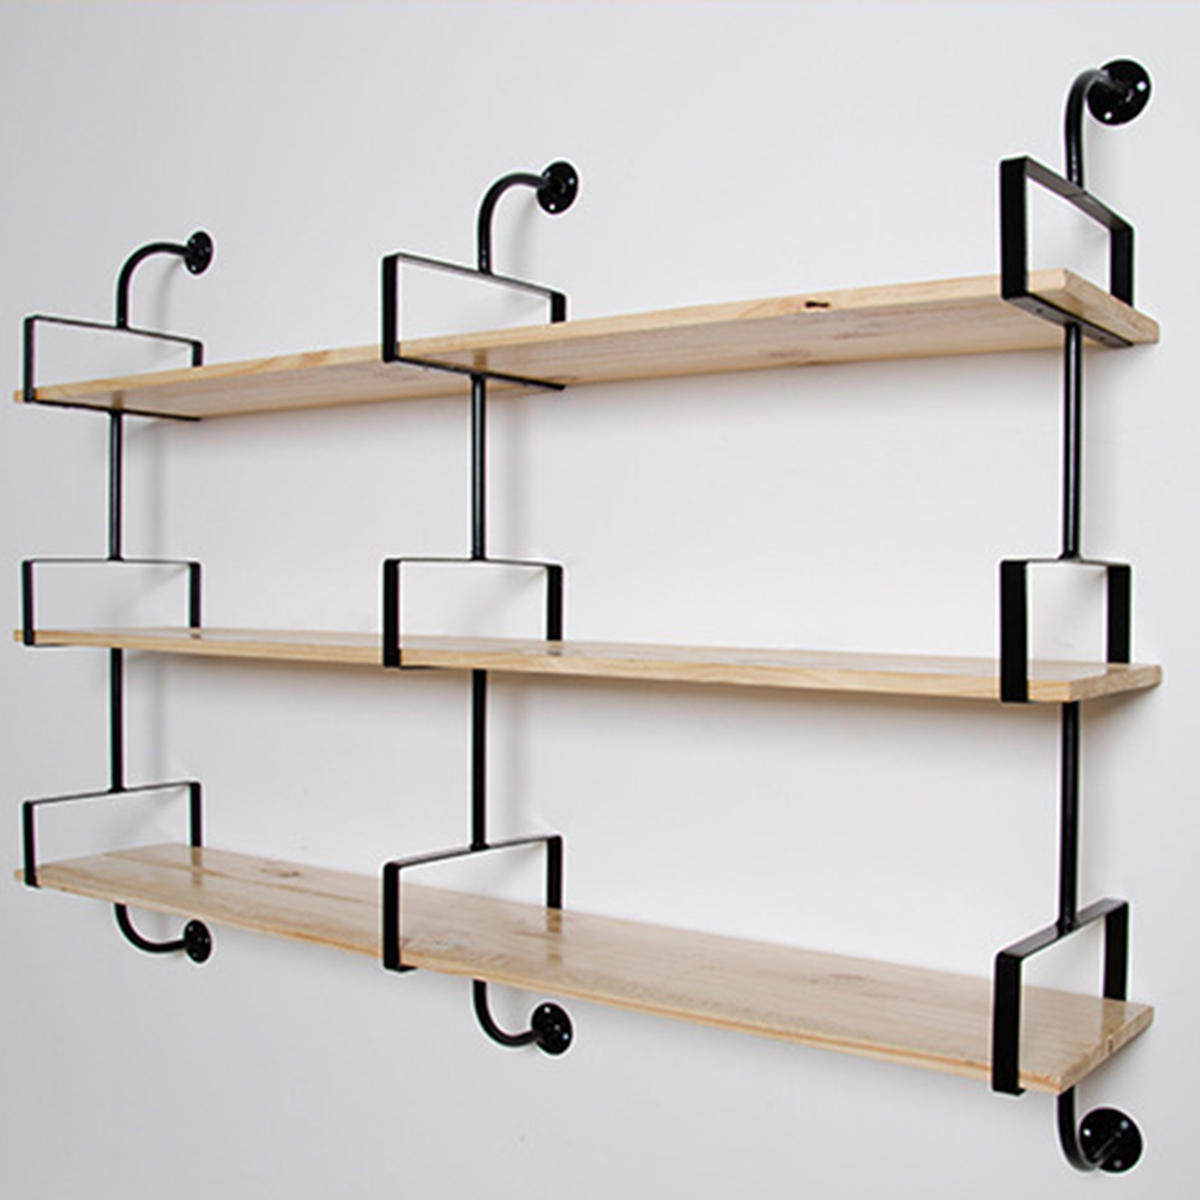 2pcs Industrial Retro Bookshelf Diy Wall Mounted Storage Shelves Bracket 3 Layers Iron Pipe Shelf For Home Decor Kitchen Kids Rooms